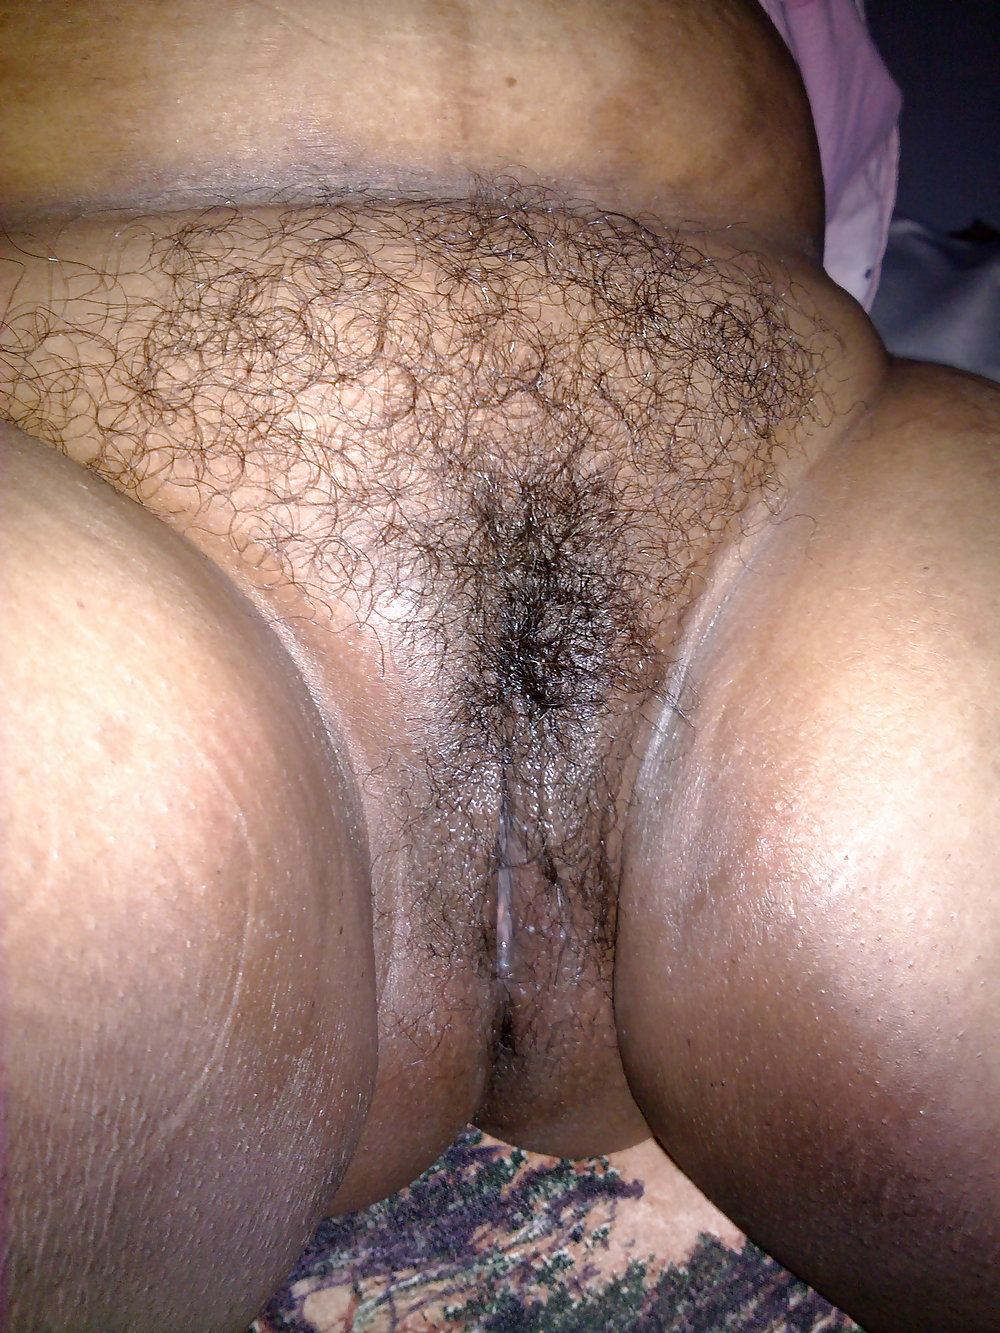 Bbw Aunty Rubs Pussy While Speaking On Phone Porn Galery Photo